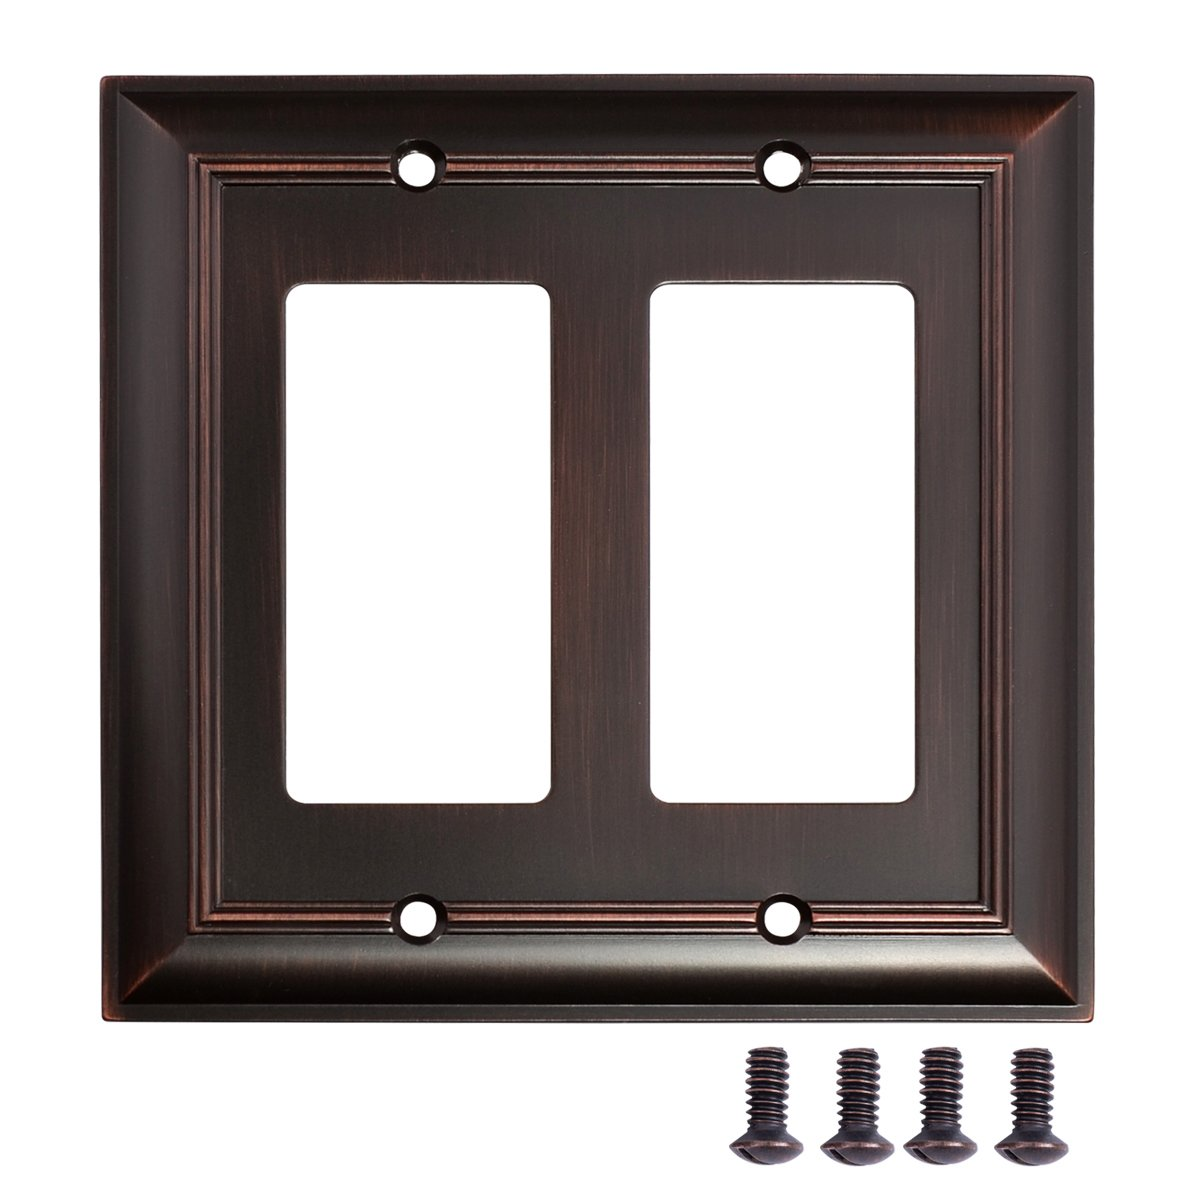 AmazonBasics Double Gang Wall Plate, Oil Rubbed Bronze, 2-Pack